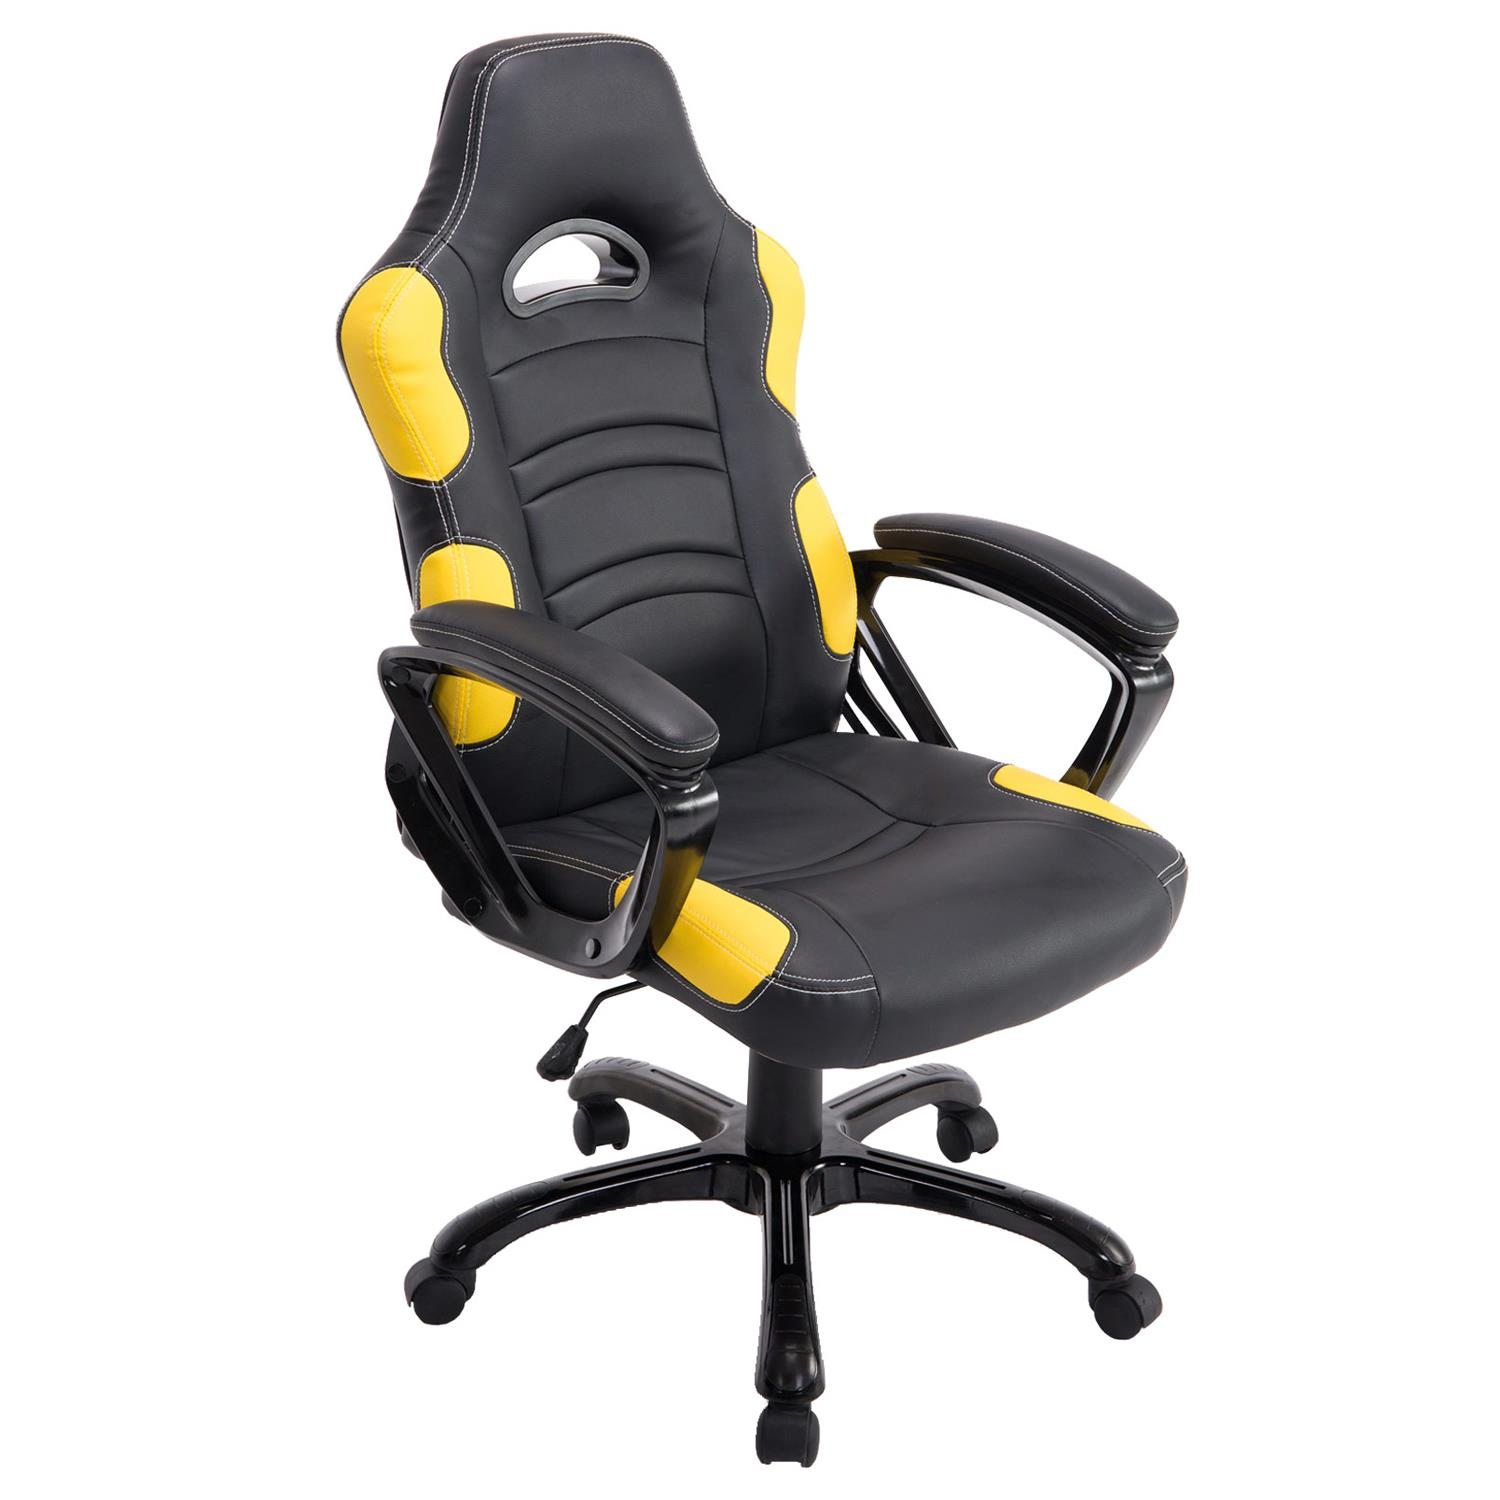 Chaise Gaming AOKI, Inclinable, Design Sportif, en Cuir, de Couleur Noir/Jaune